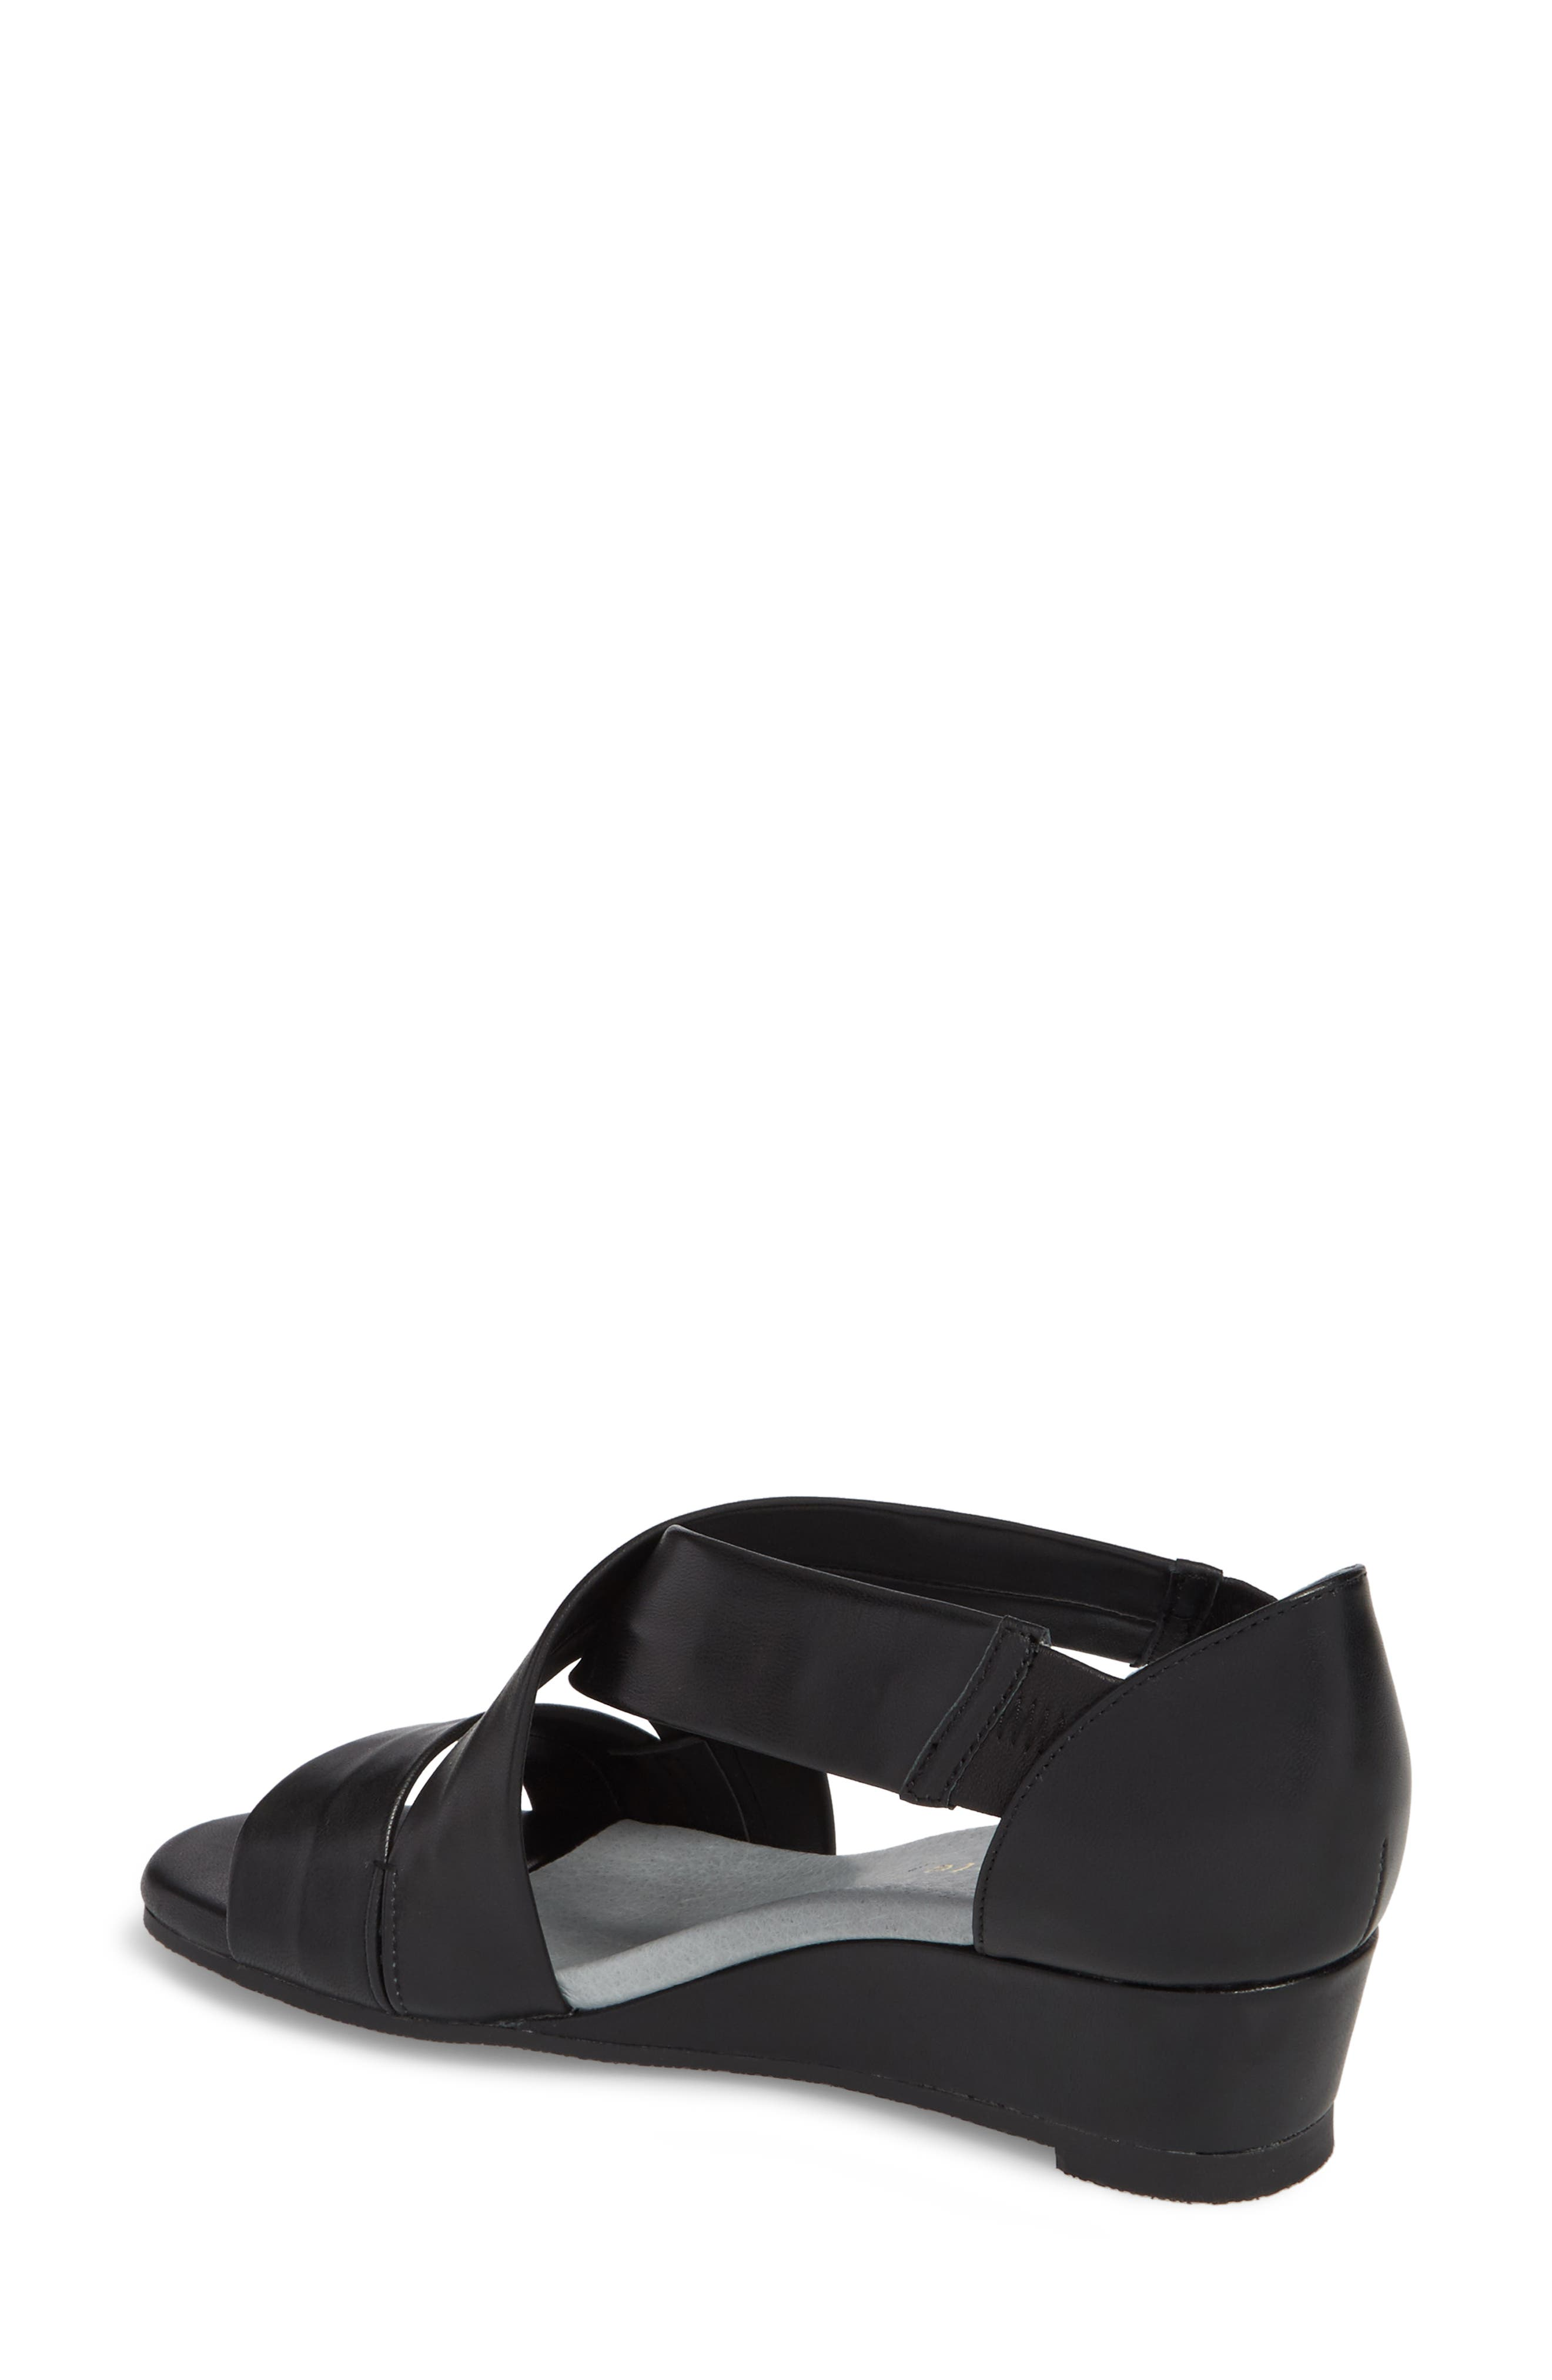 DAVID TATE, Swell Cross Strap Wedge Sandal, Alternate thumbnail 2, color, BLACK LEATHER